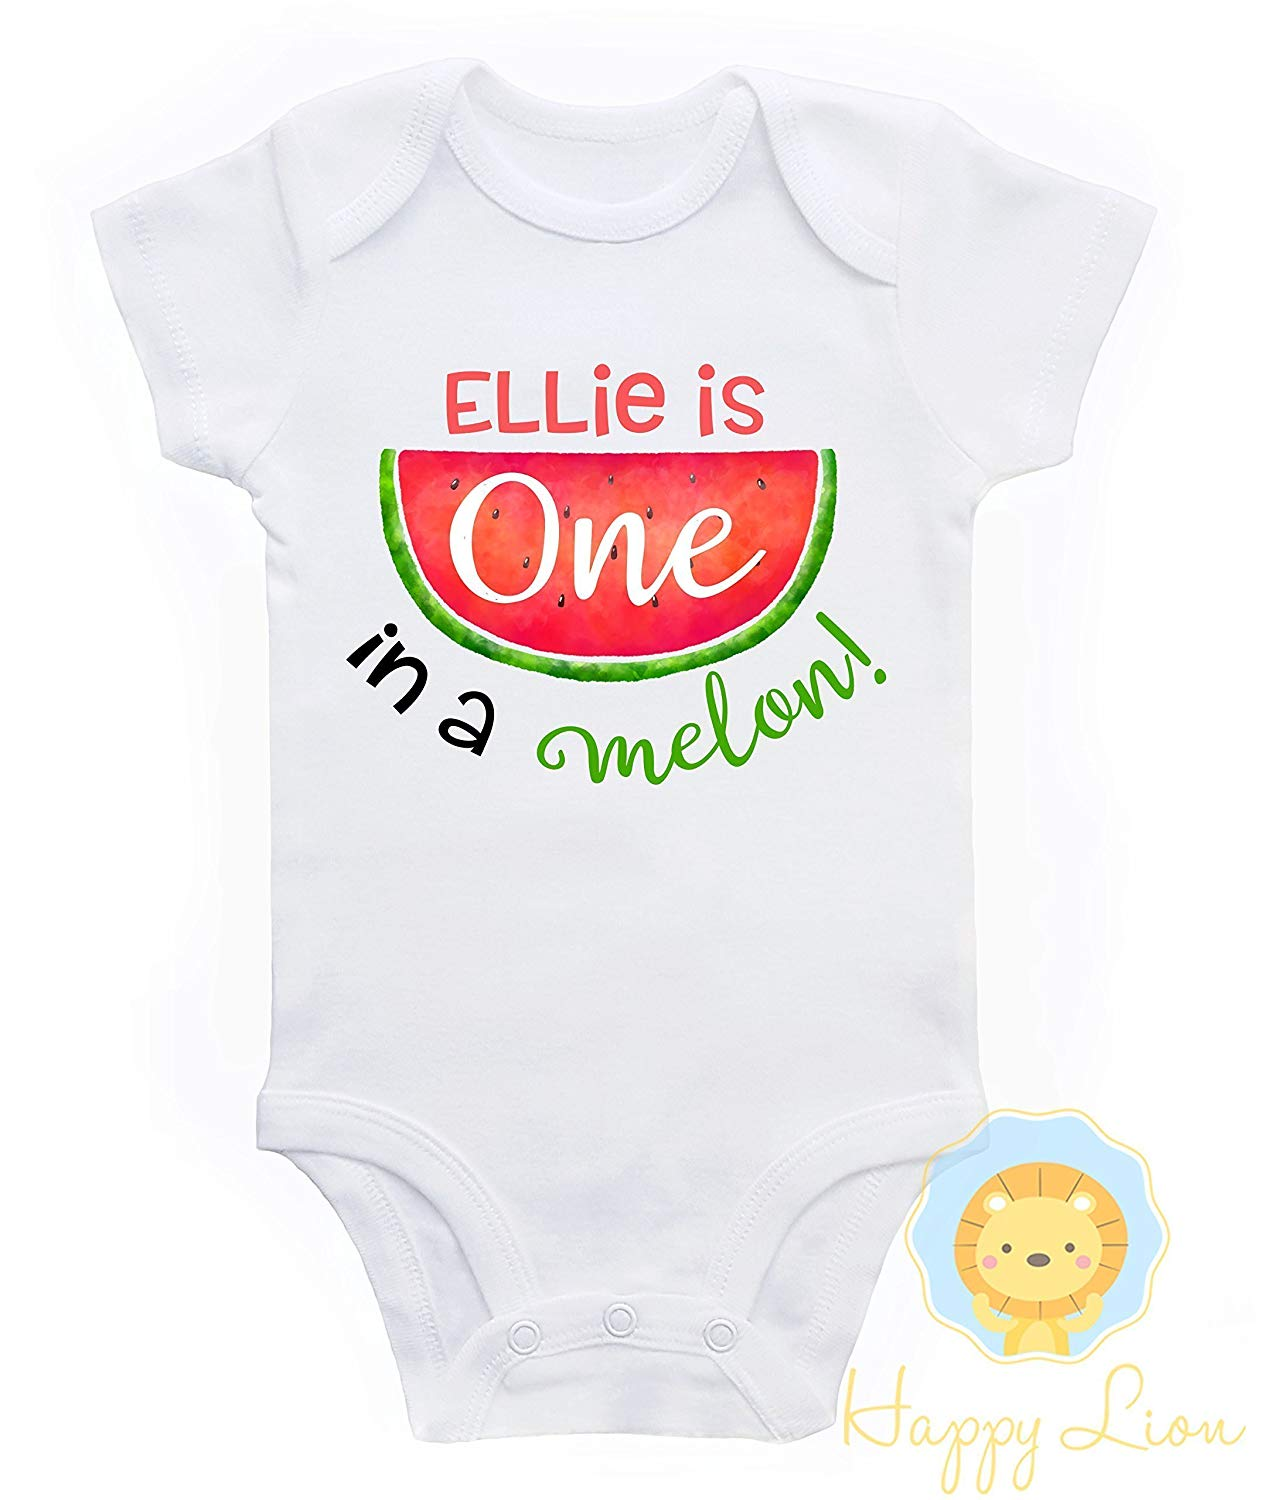 833c28252 Get Quotations · Happy Lion Clothing - Watermelon 1st Birthday Onesie  bodysuit for Baby Girl, One in a